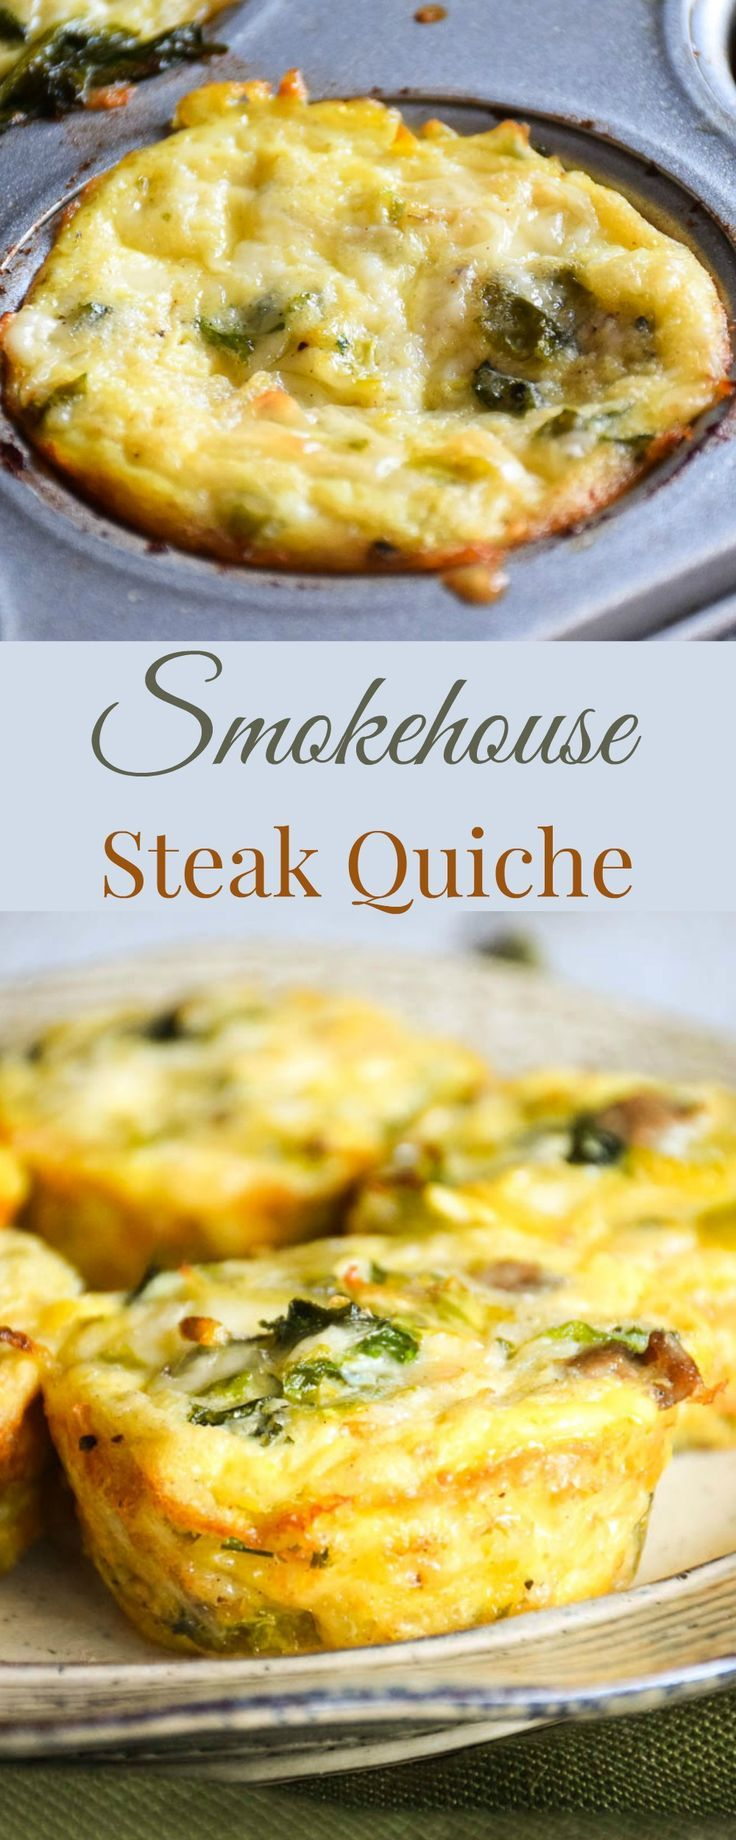 Smokehouse Steak Quiche is made easy using Mann's Brussels Sprouts Nourish Bowl with cooked steak, eggs and cheese baked in single serving size muffin cups! #SundaySupper #Nourish2Flourish @veggiesmadeeasy